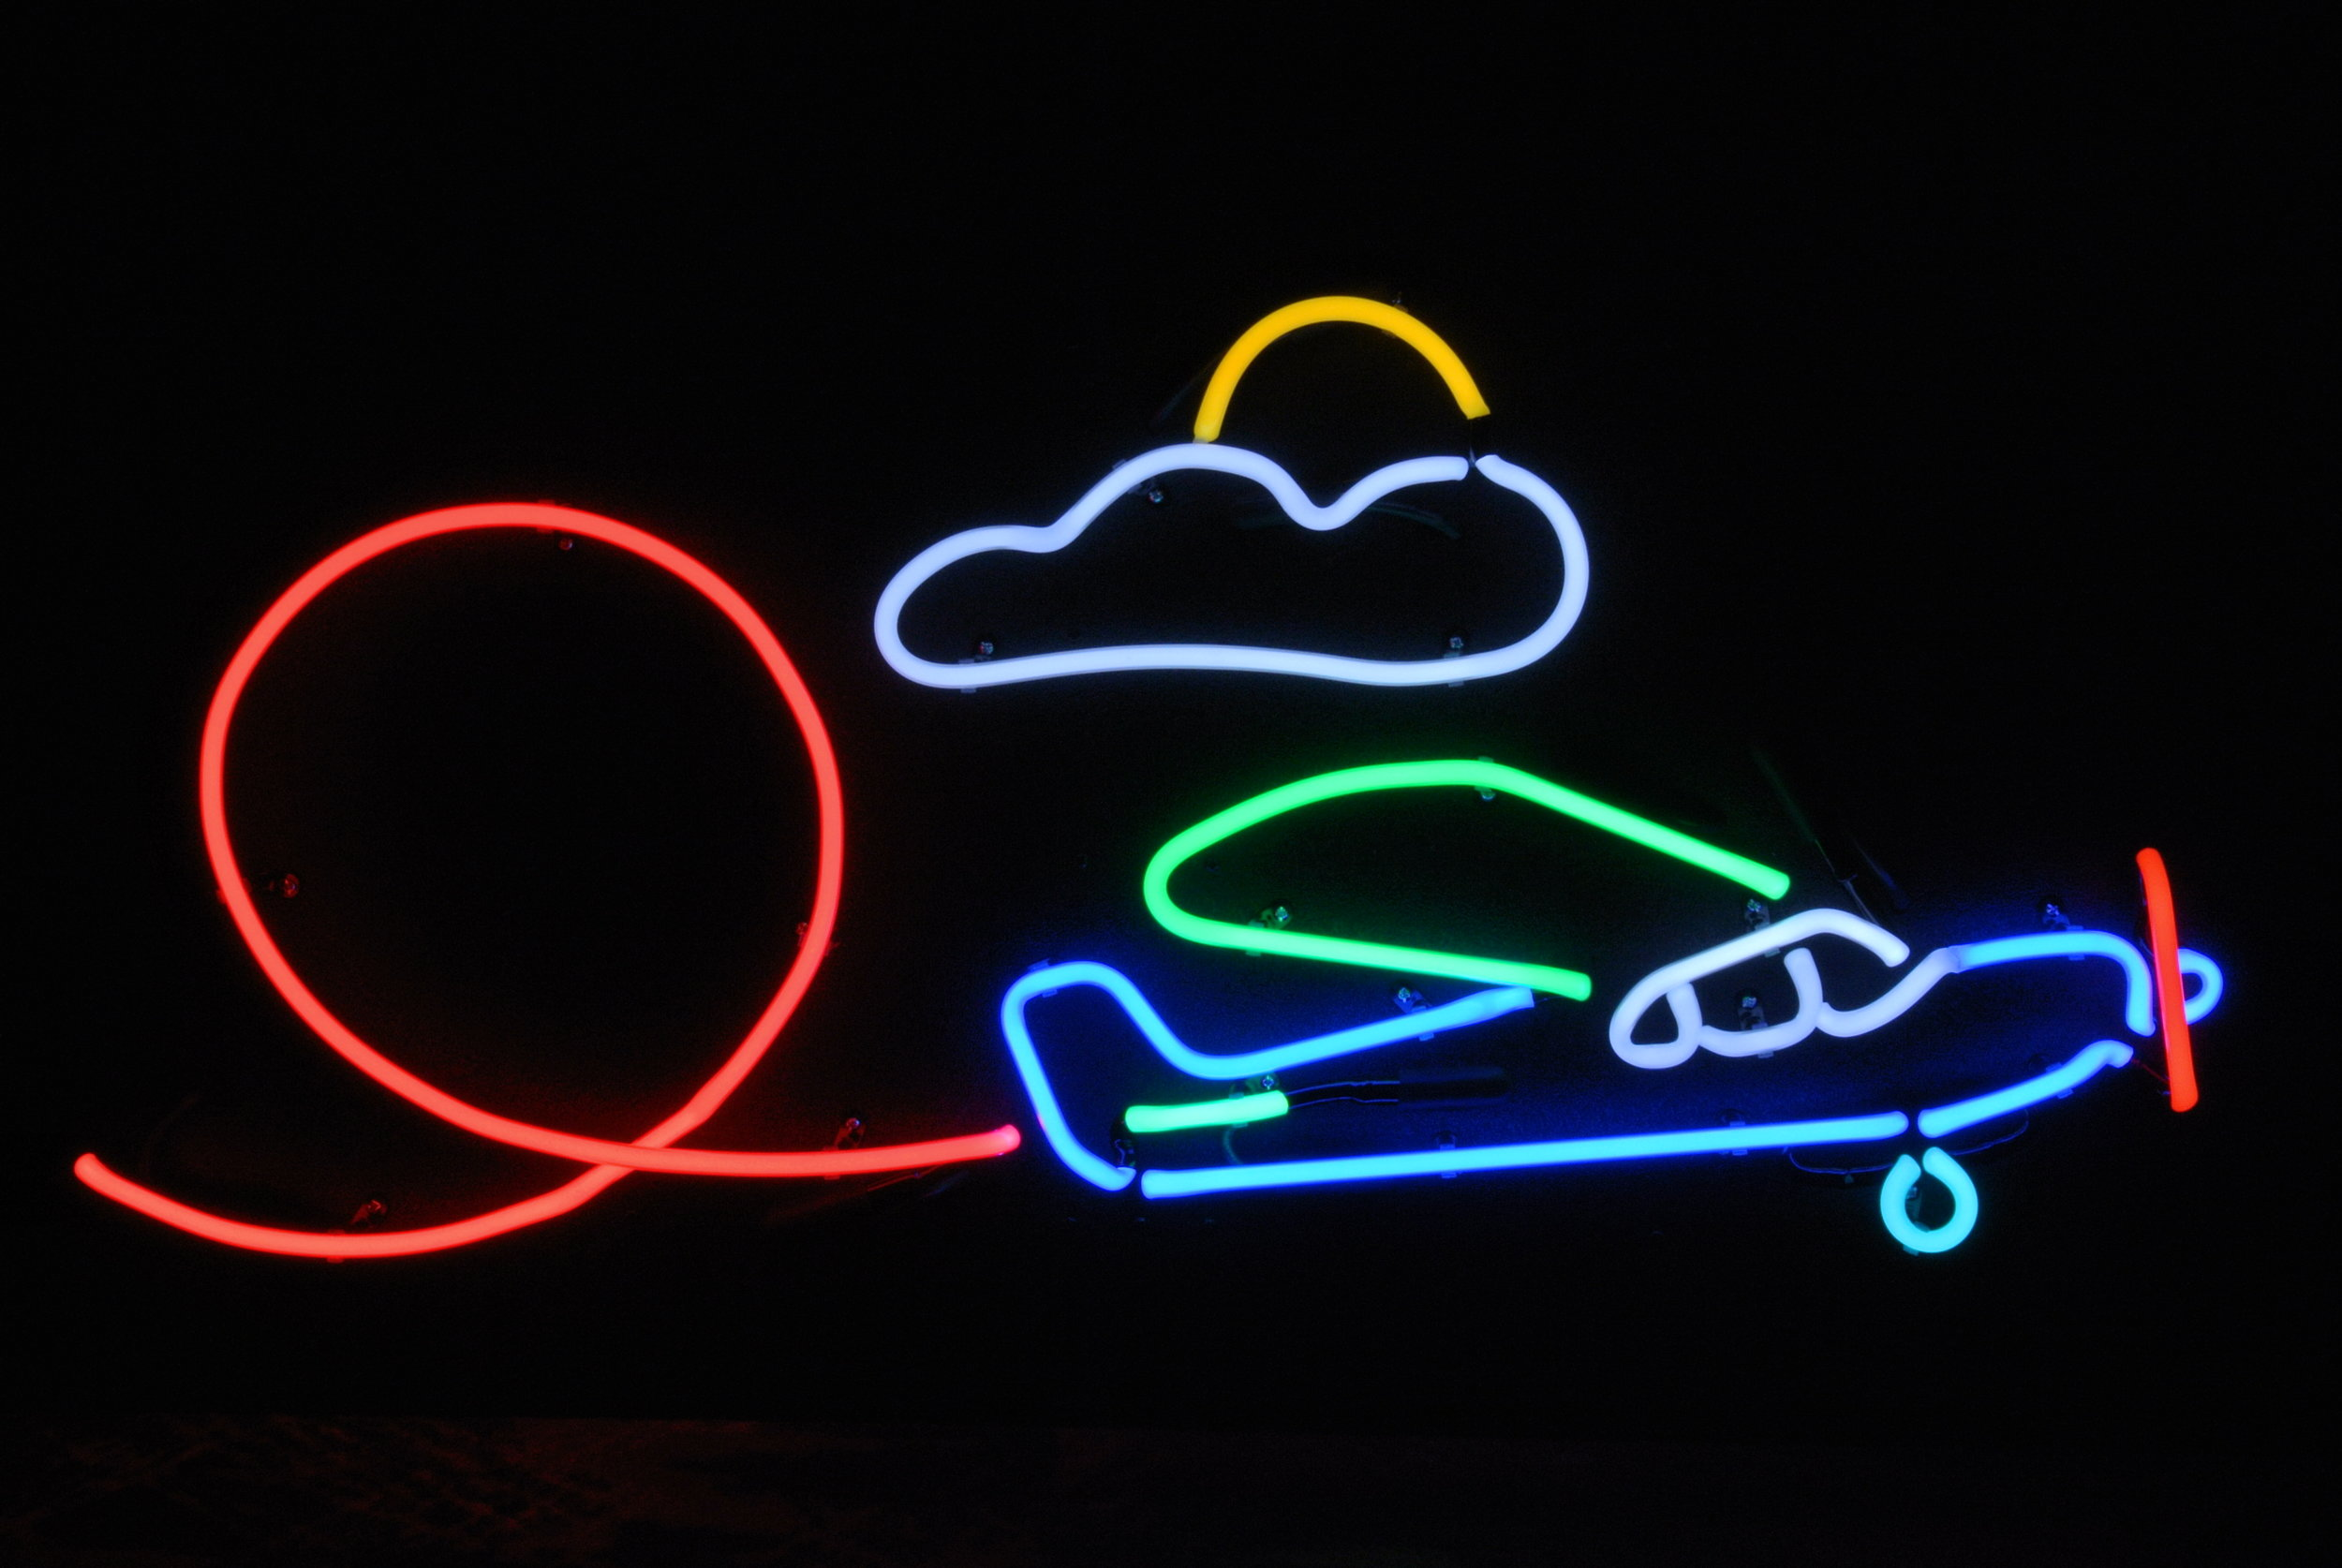 STUNT AIRPLANE NEON LIGHT ART SCULPTURE by John Barton - BartonNeonMagic.com